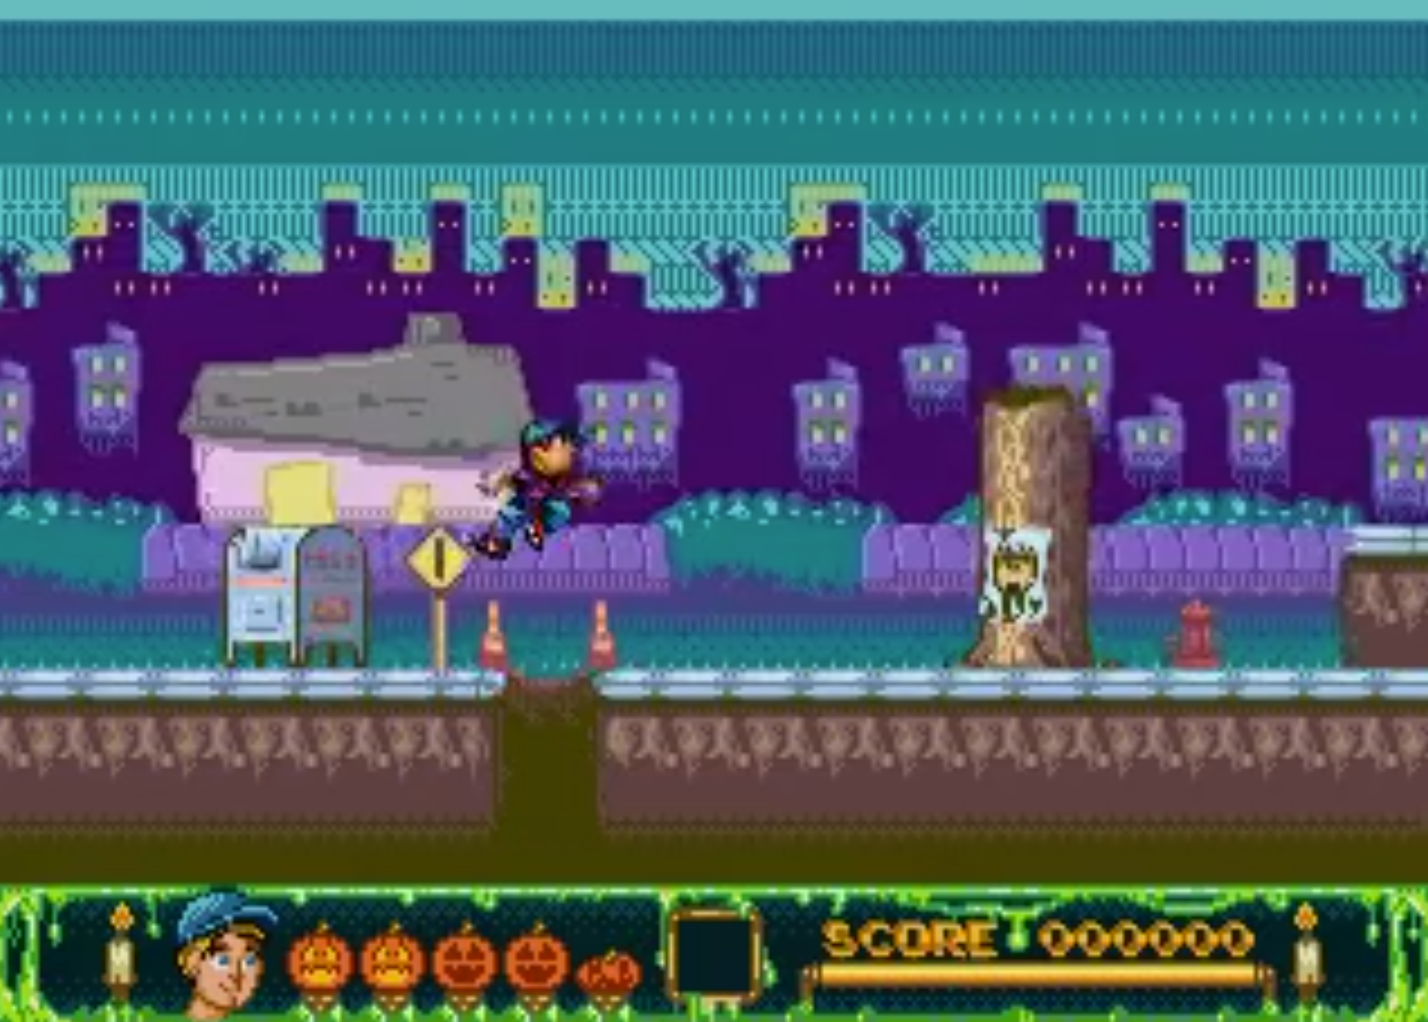 Project: Halloween announced for the Sega Genesis / Mega Drive